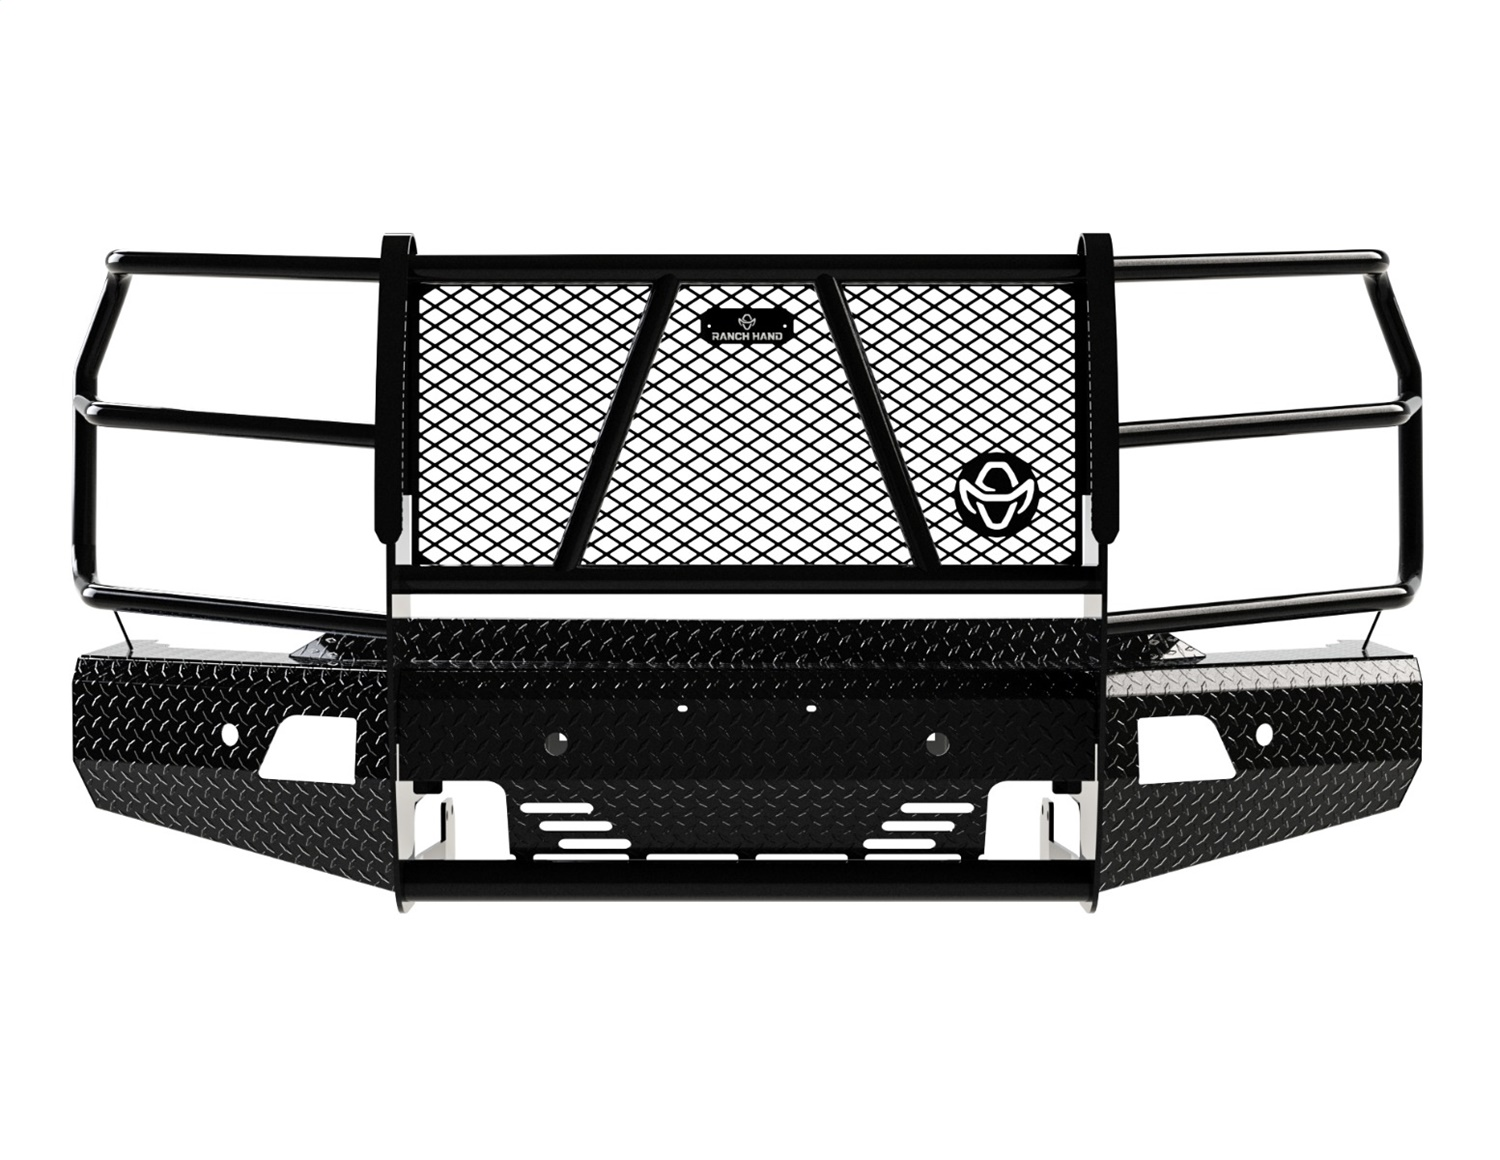 Summit Series Front Bumper, Retains Factory Tow Hooks and Fog Lights, w/ Assist Front Park